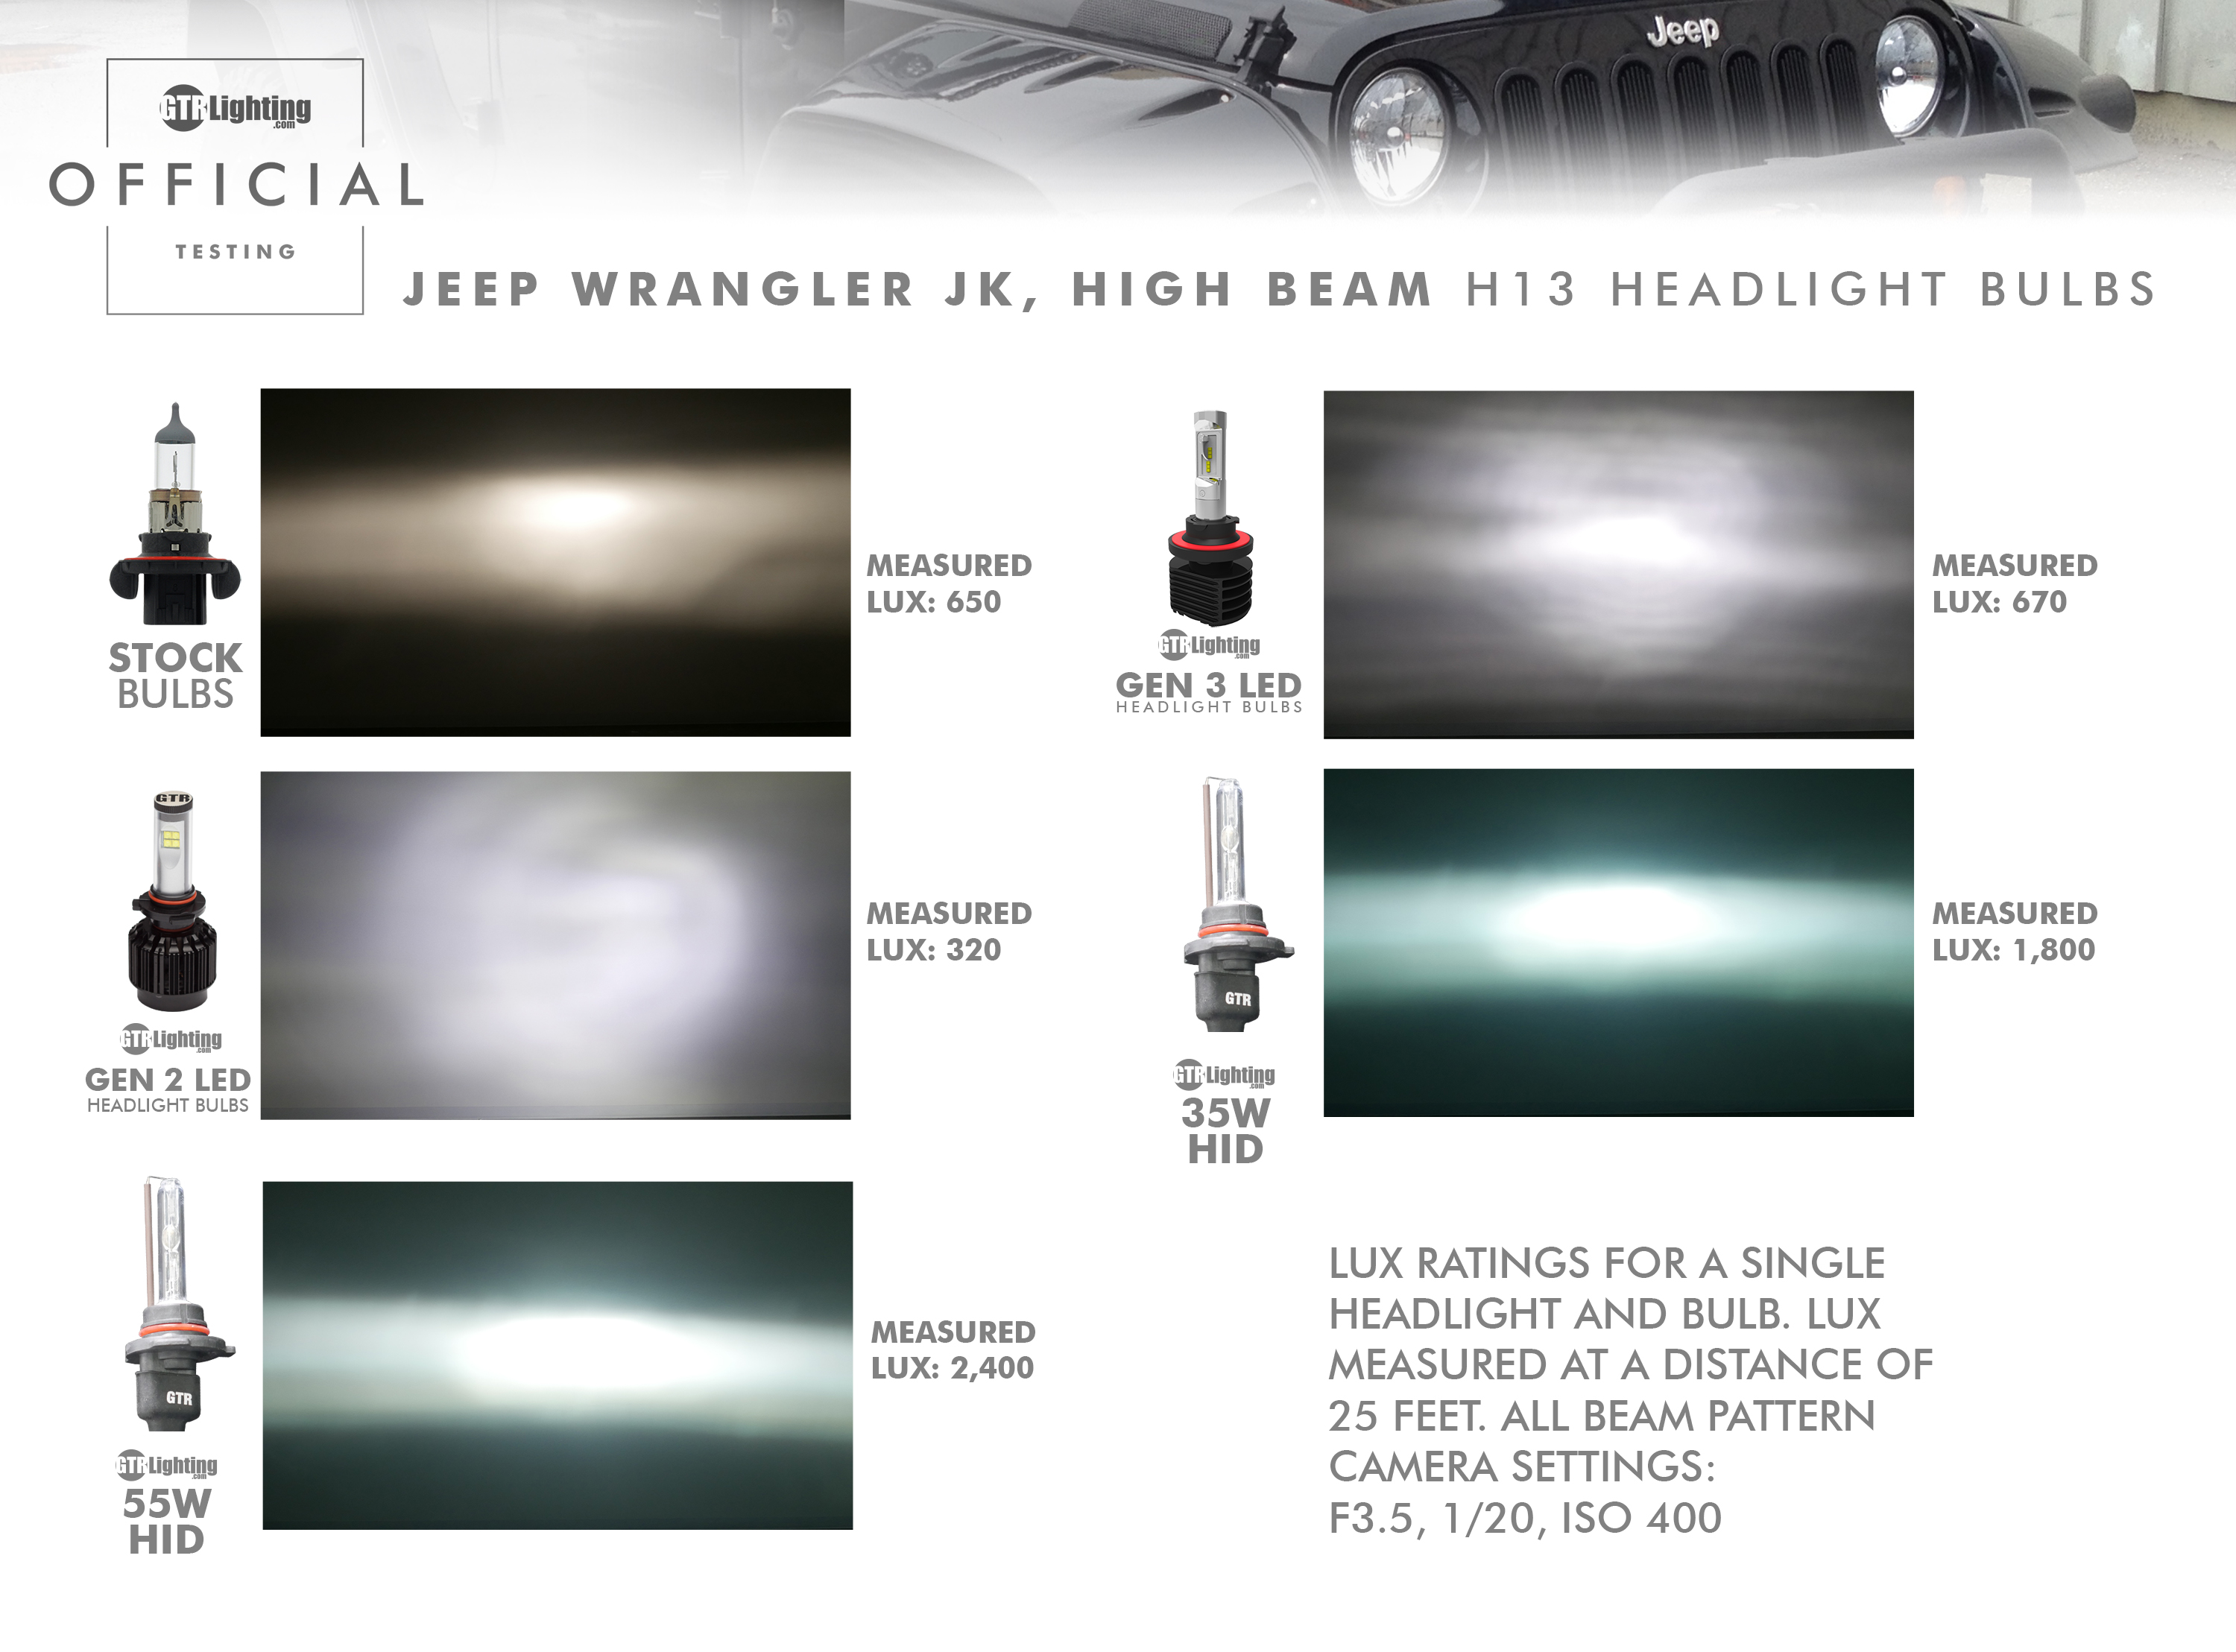 Comparing Gen 3 Led Headlight Bulbs To Gen 2 Bulbs And Hid